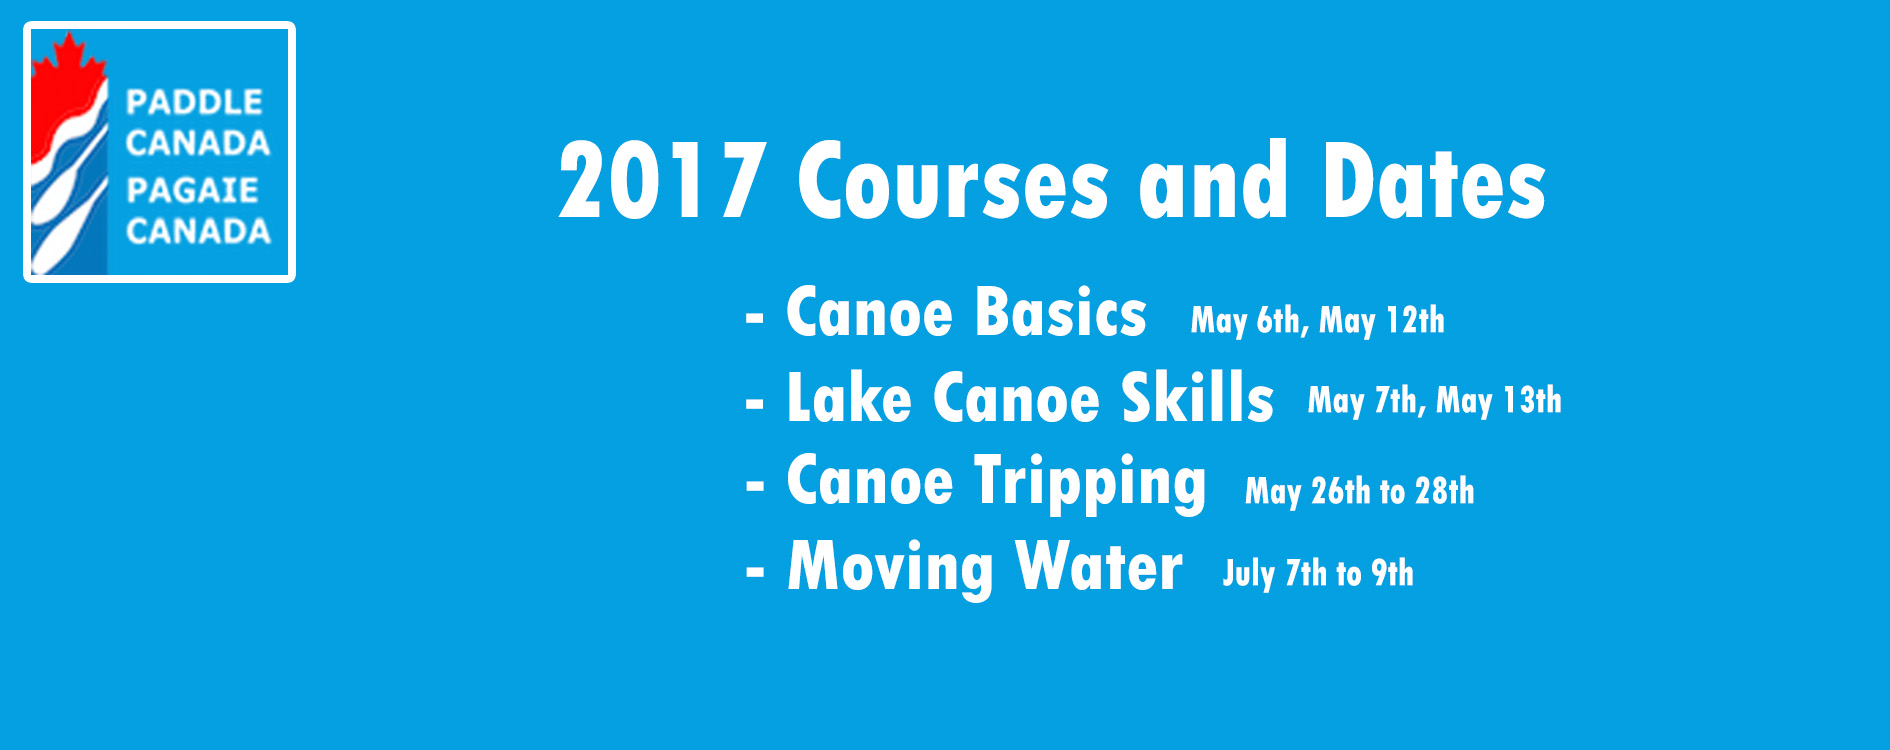 Paddle Canada Courses